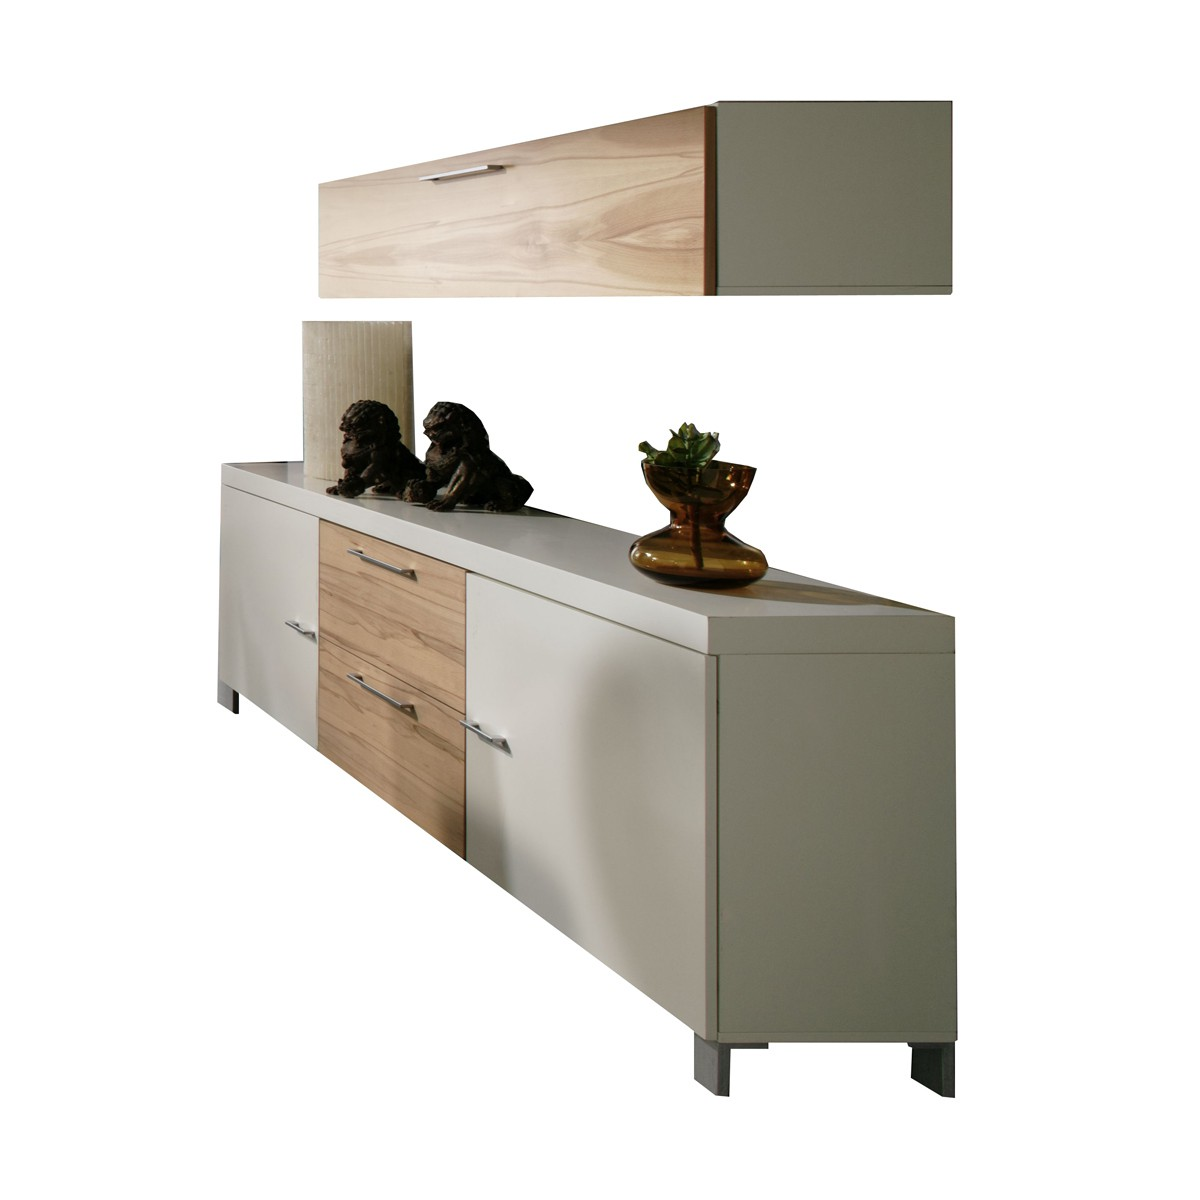 sideboard anrichte kommode mit h ngeschrank modern kernbuche wei neu ebay. Black Bedroom Furniture Sets. Home Design Ideas